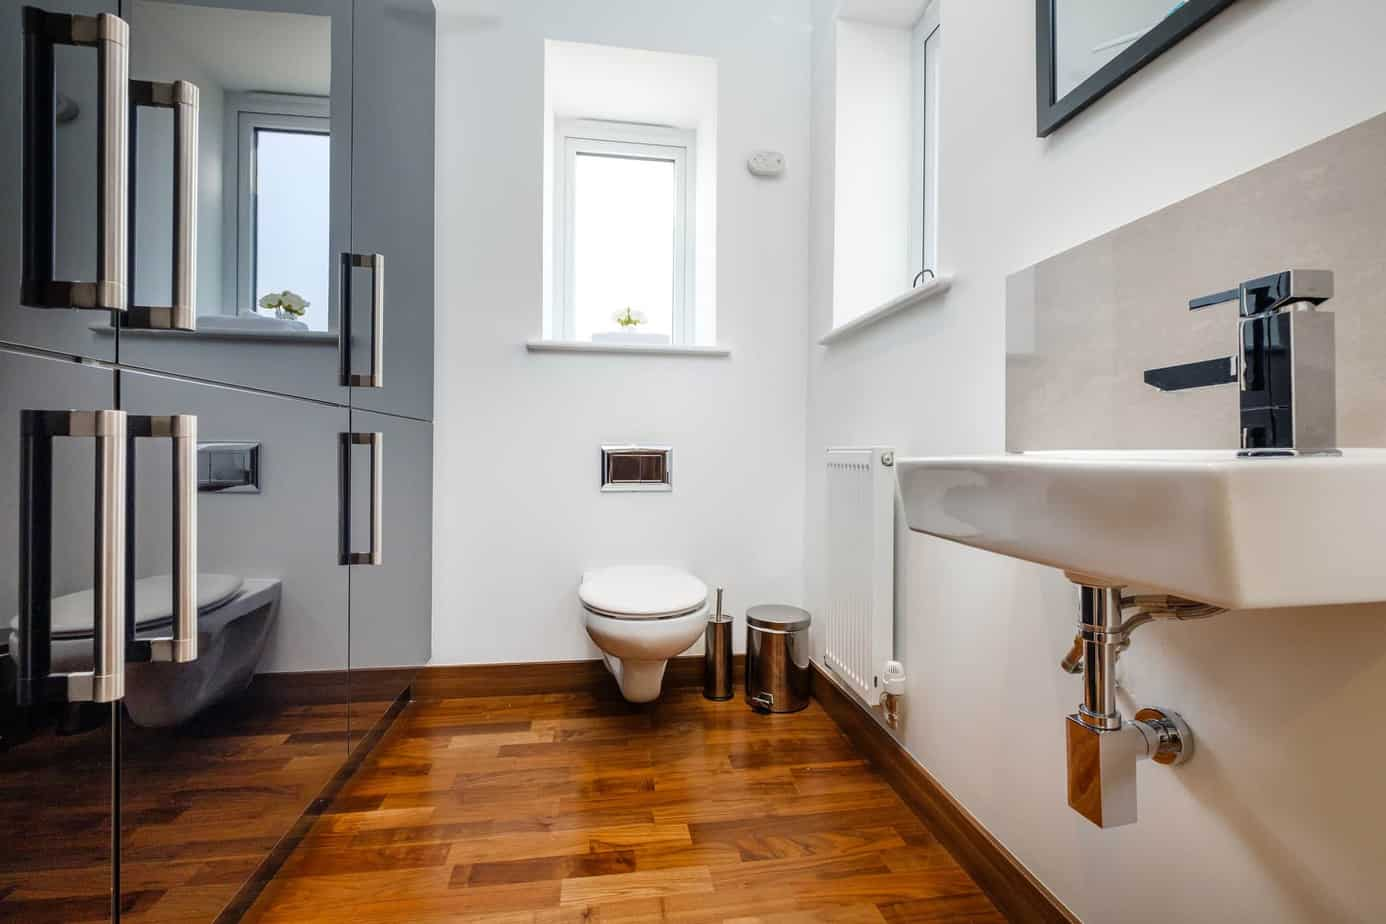 Tailored Stays grand central cambridge serviced apartment downstairs bathroom